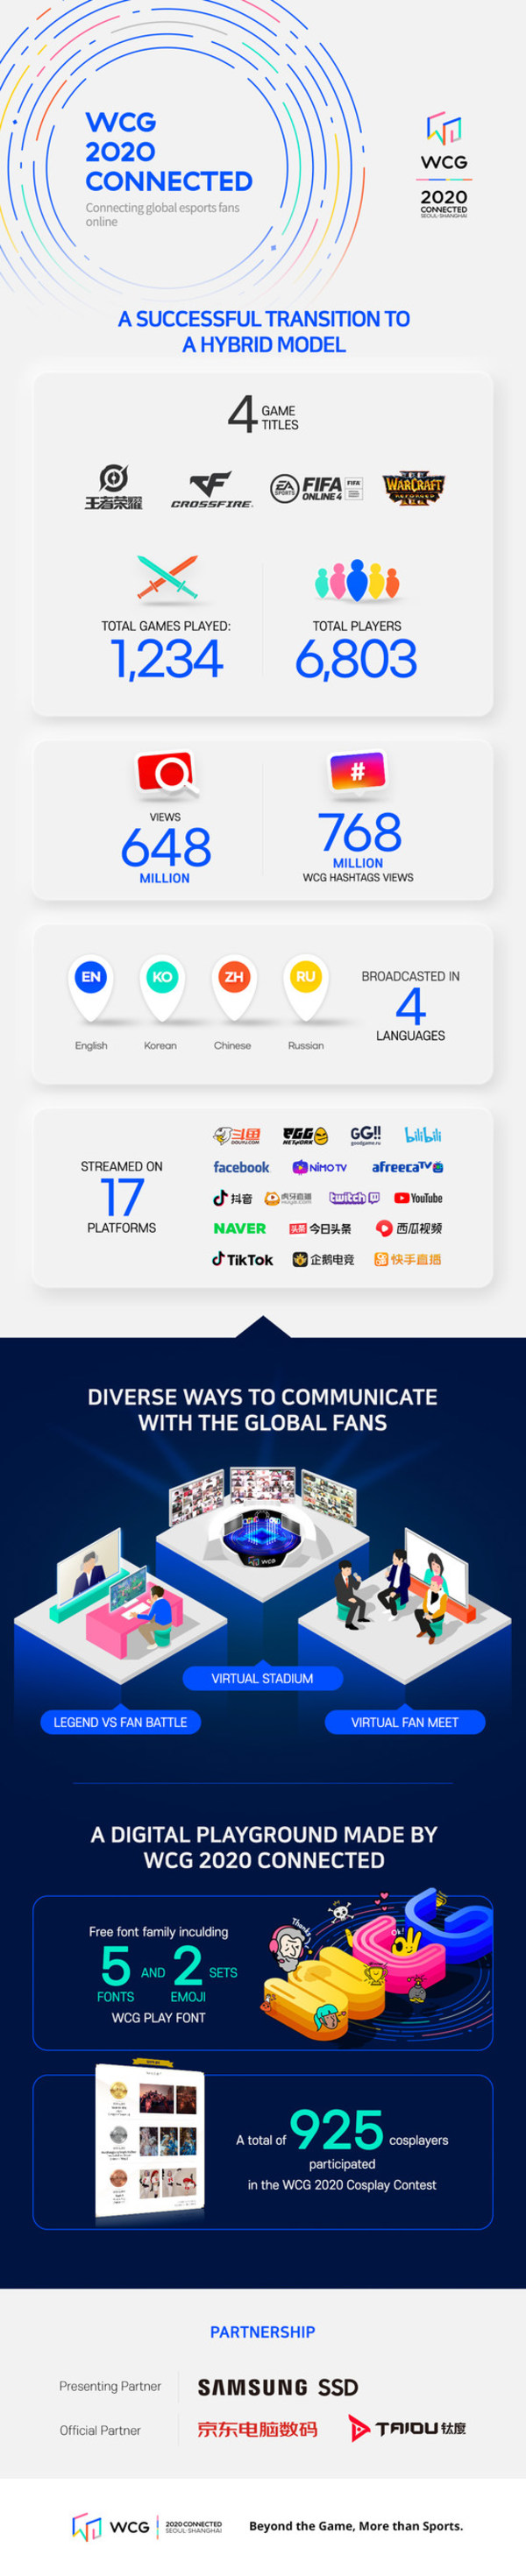 WCG 2020 CONNECTED